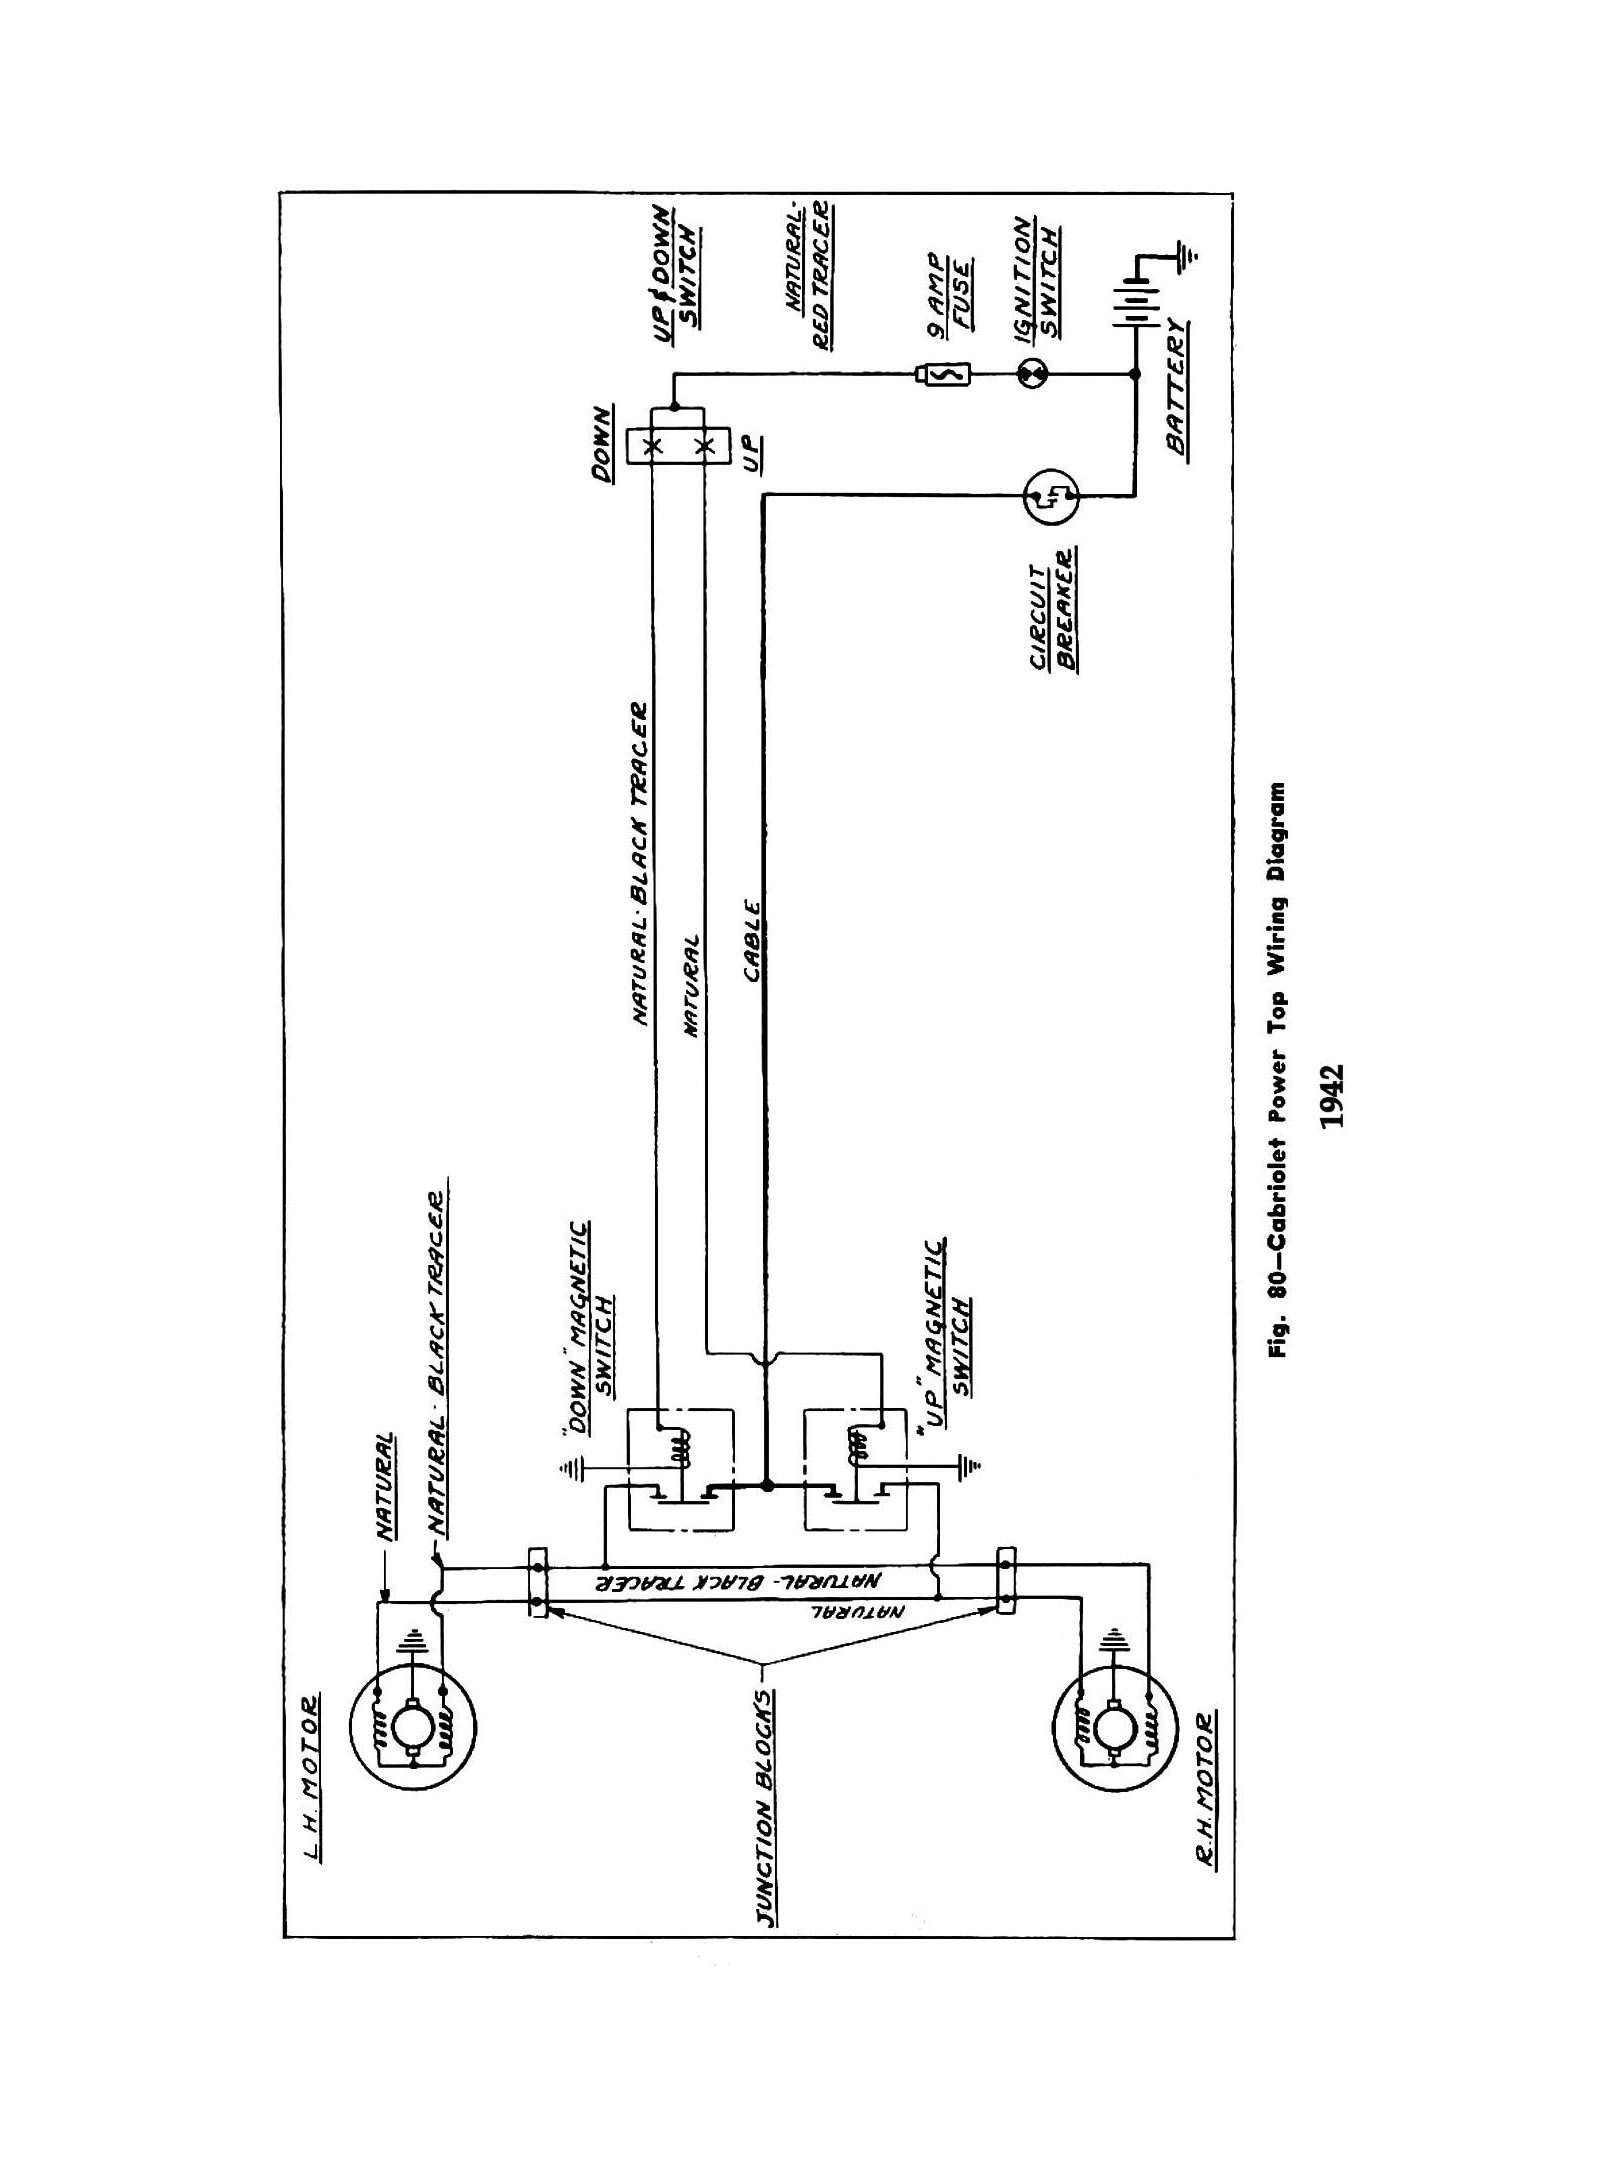 hight resolution of 1957 chevy power top diagram wiring diagrams scematic 1956 chevy bel air 1957 chevy power top diagram